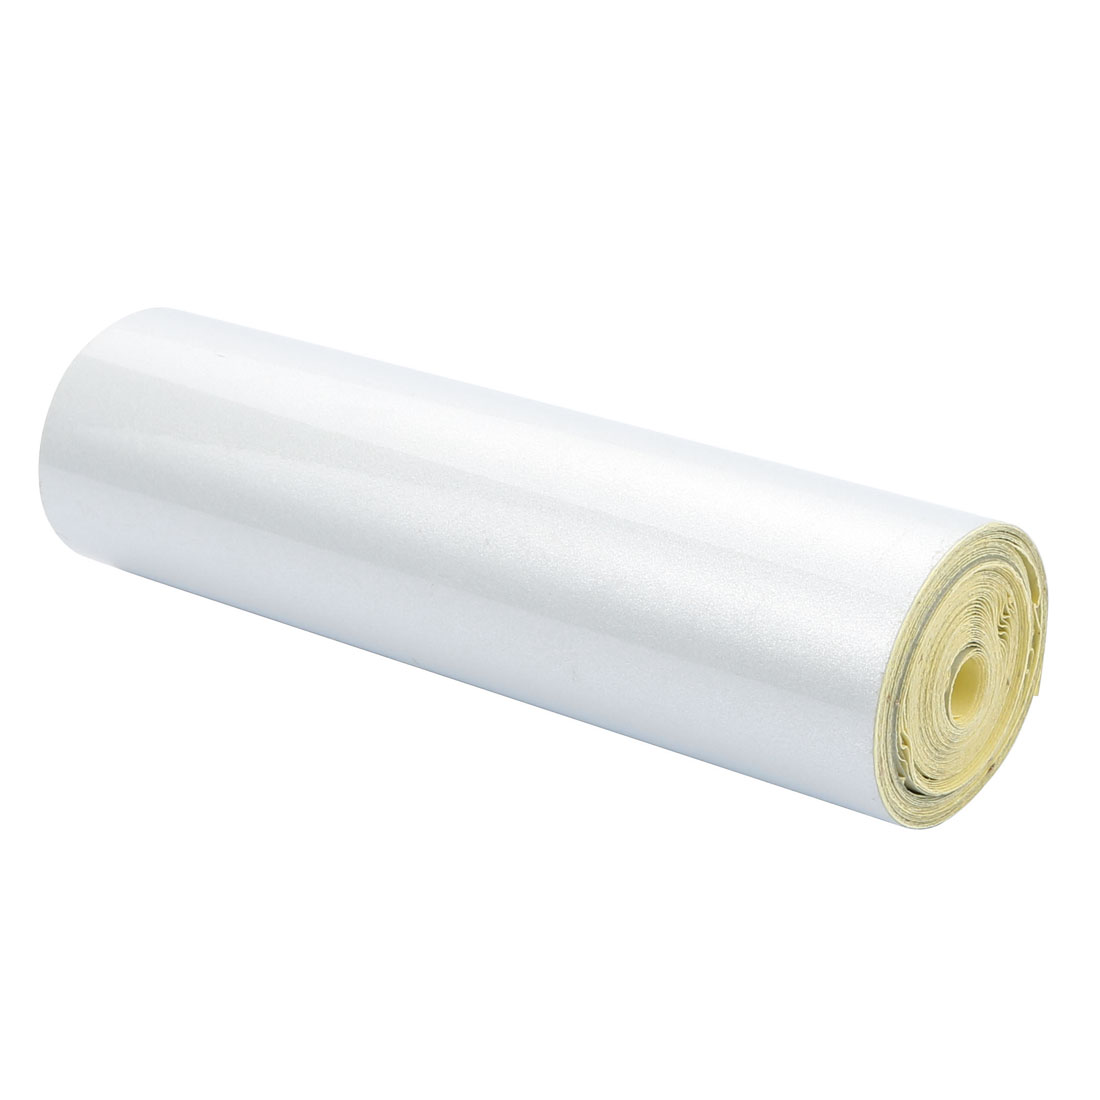 15cm Width 5M Length Single Sided Adhesive Reflective Warning Tape White